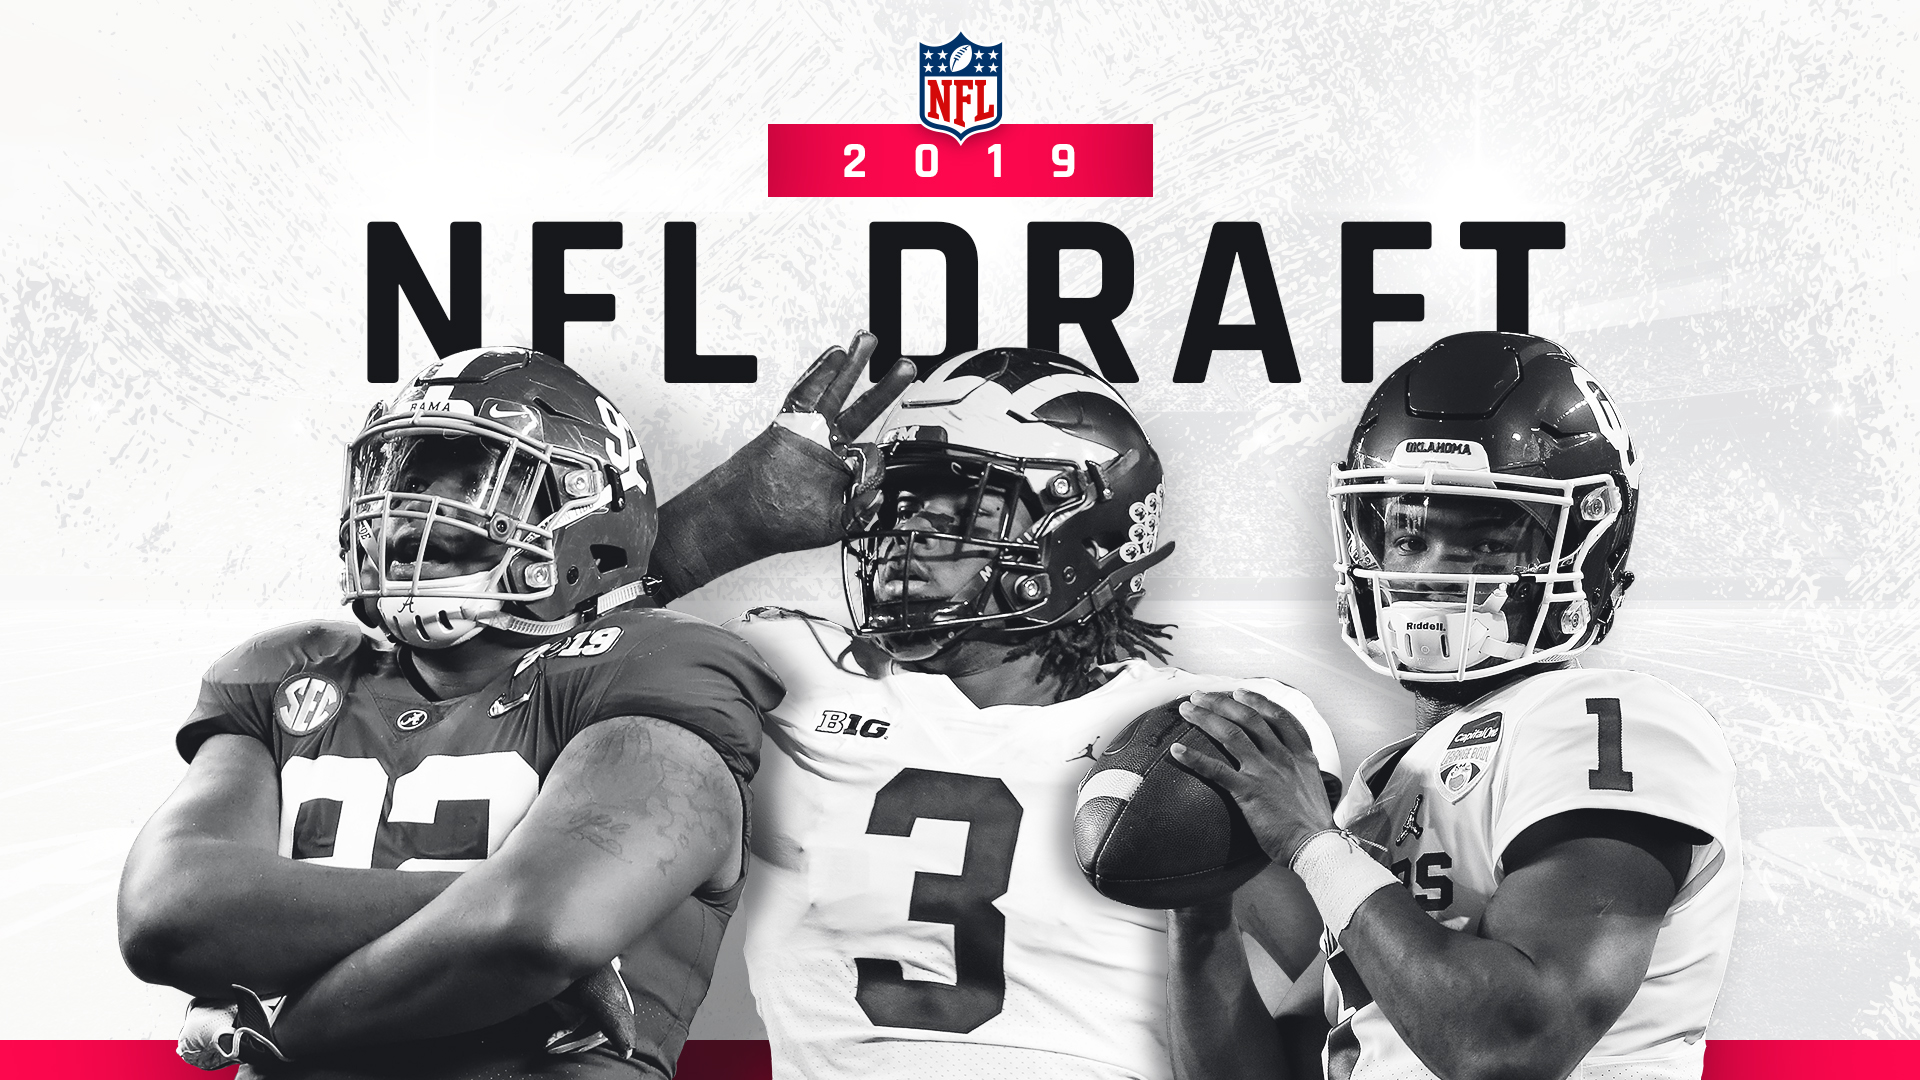 f1e91909 NFL Draft picks 2019: Complete draft results from Rounds 1-7 ...